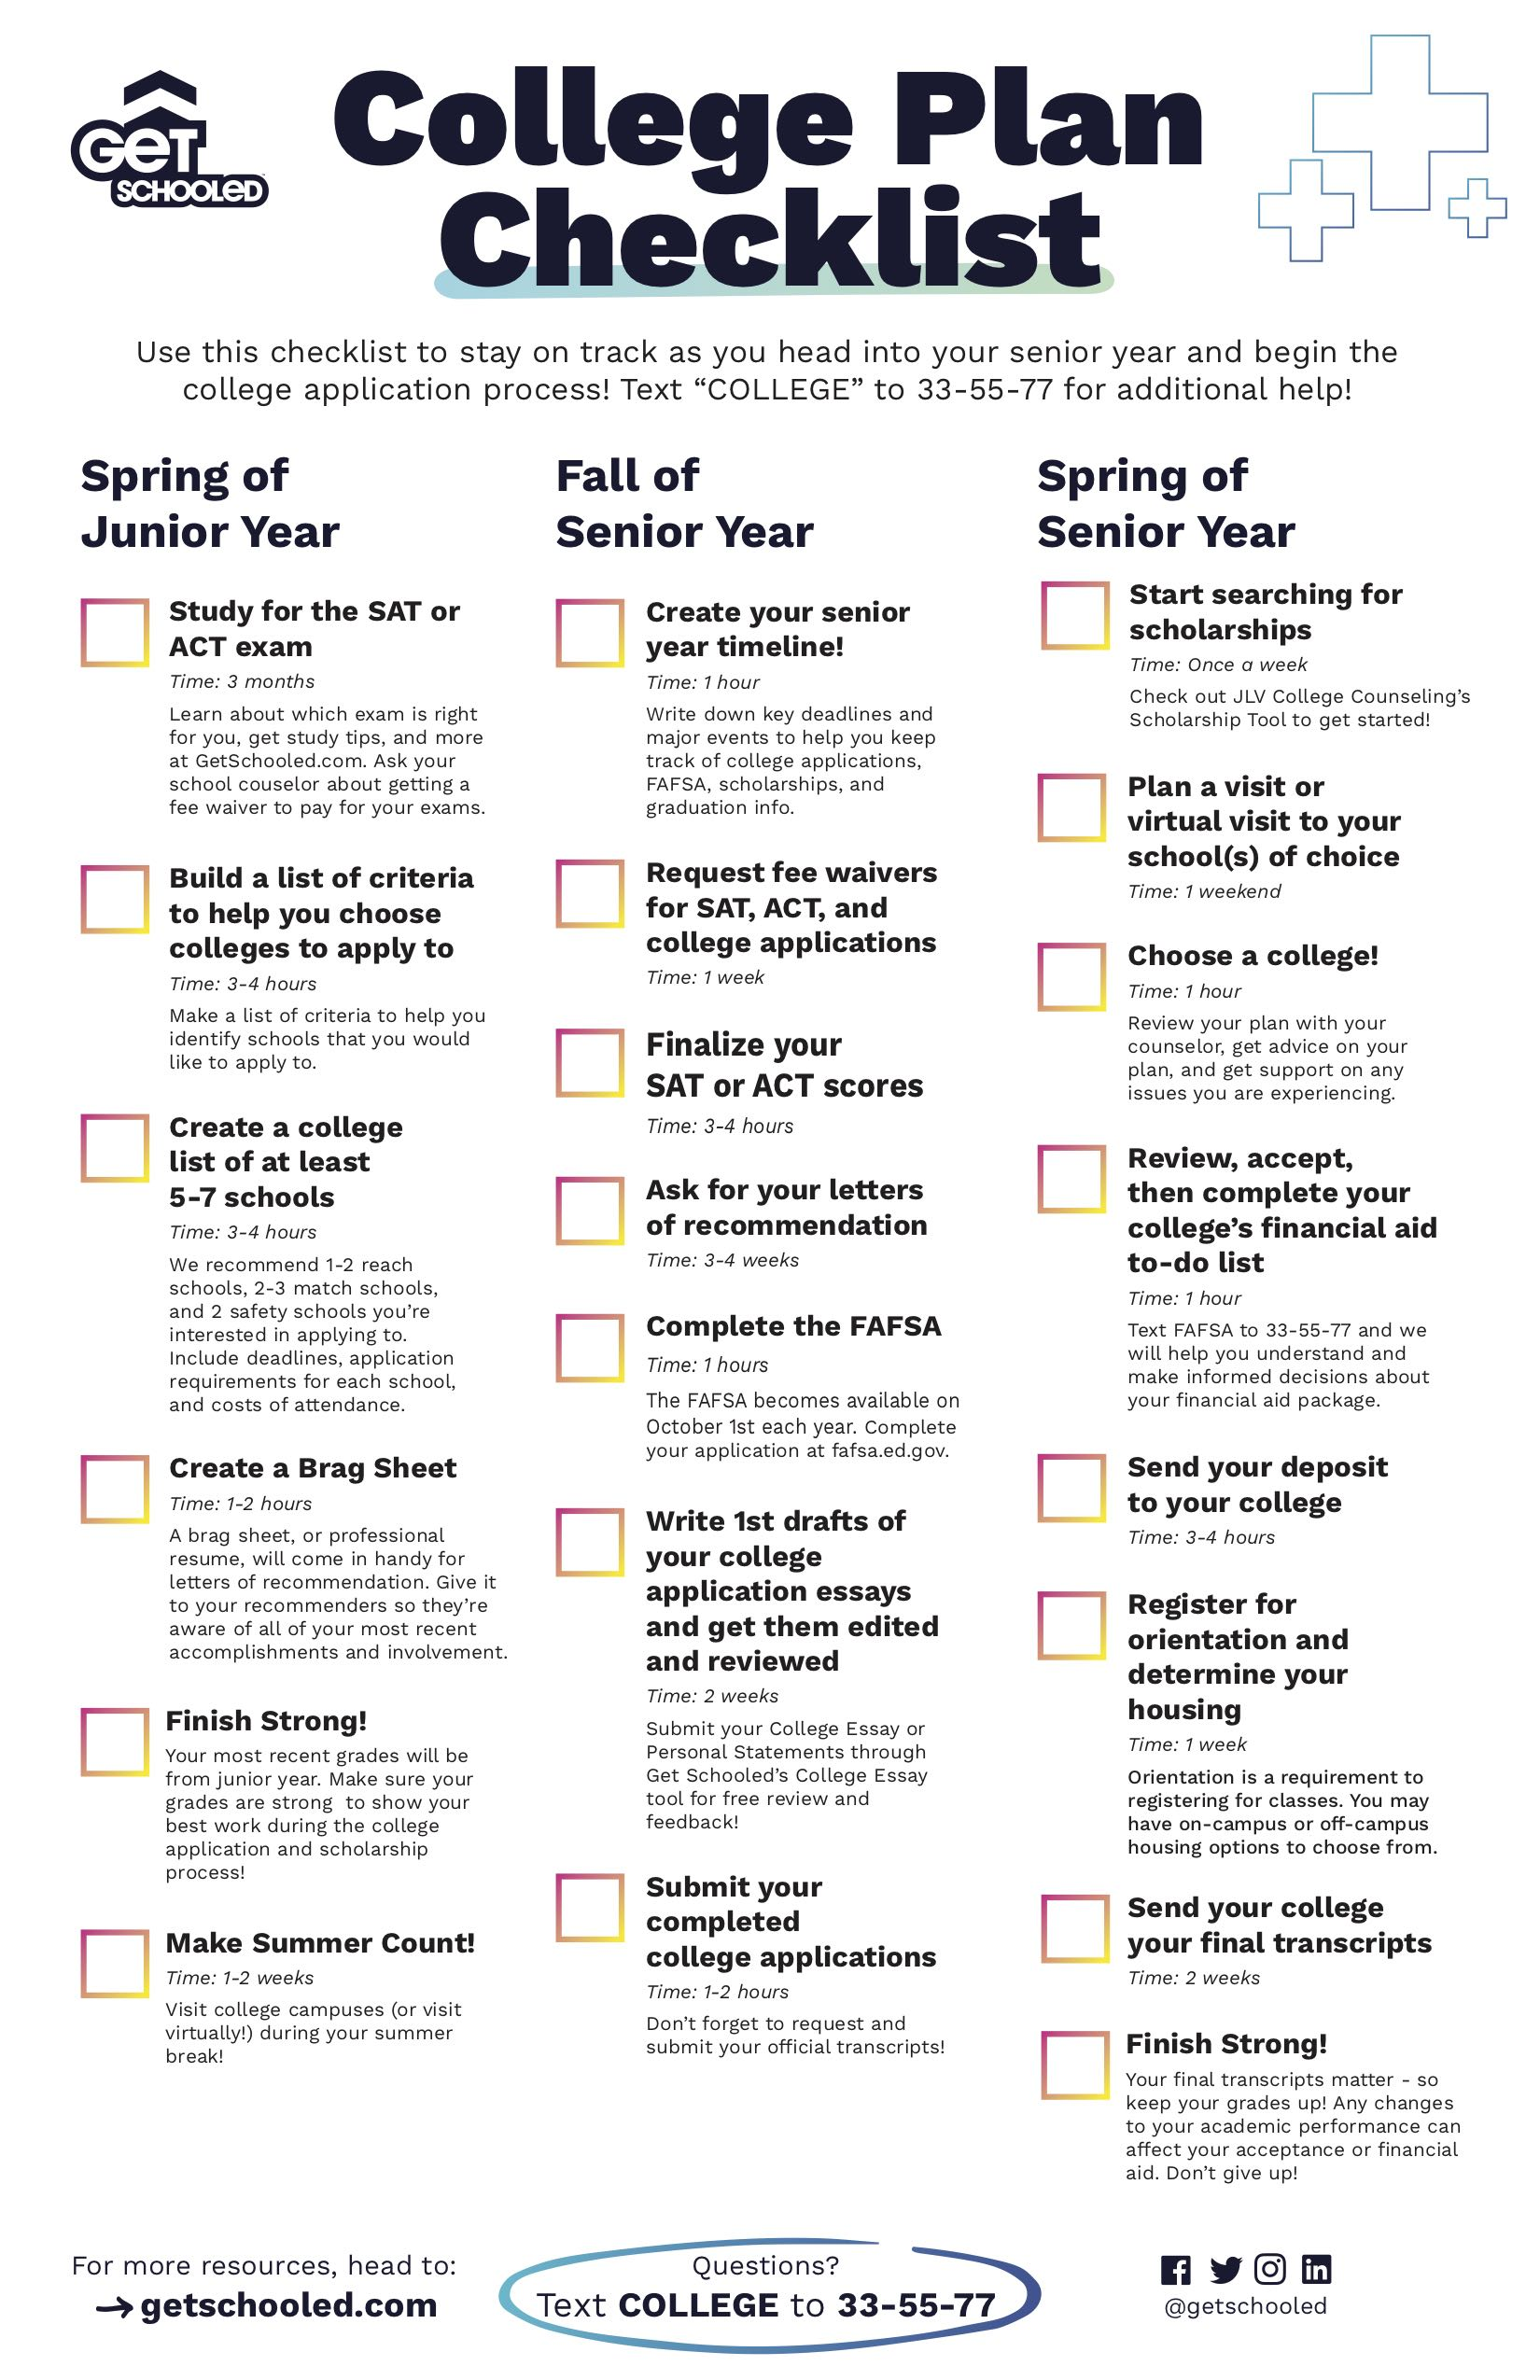 Image of the College Plan Checklist to help students on how to apply to college